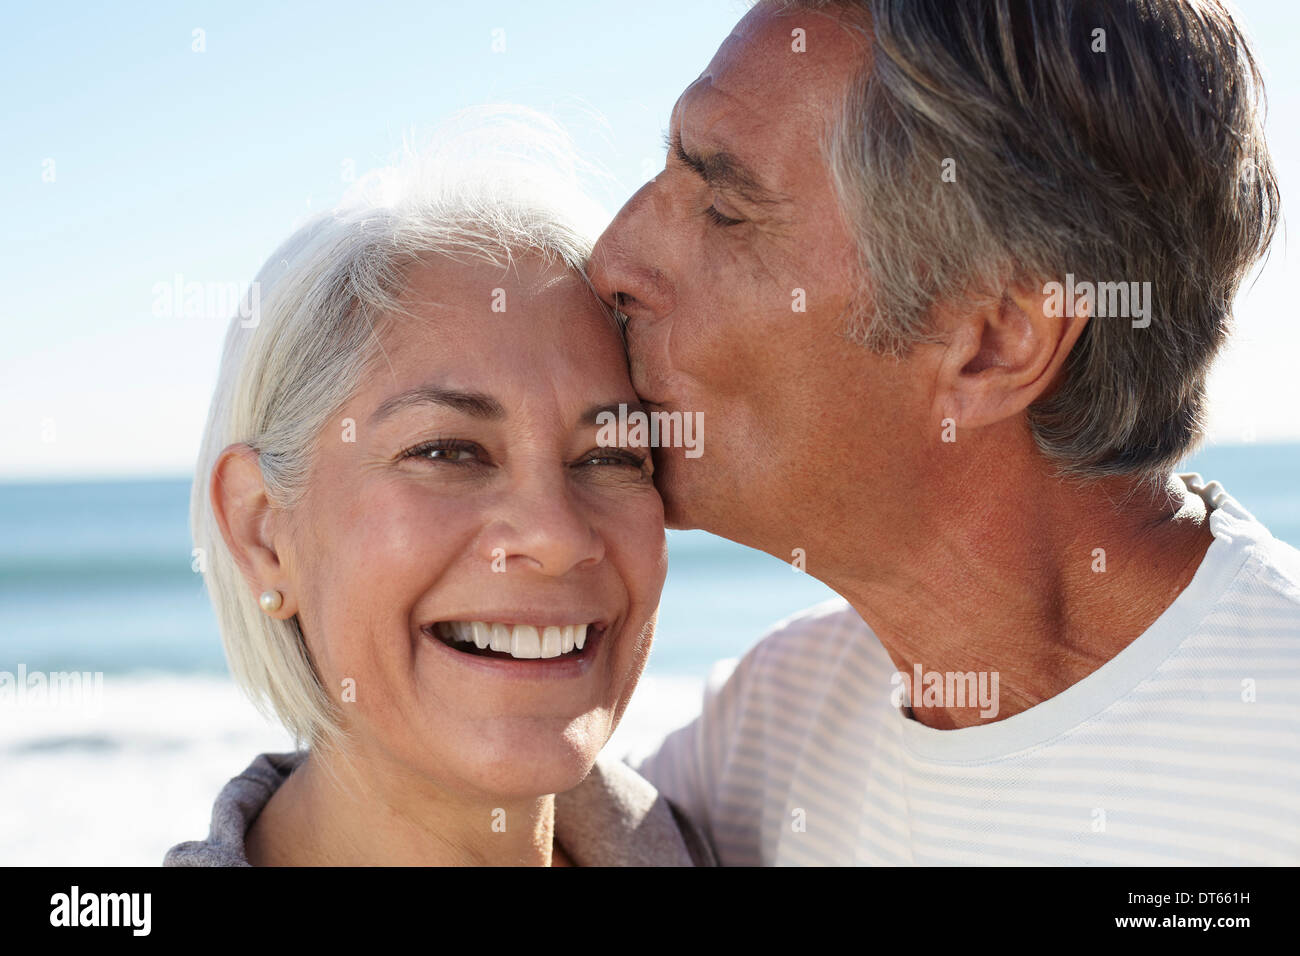 Man kissing woman on forehead - Stock Image